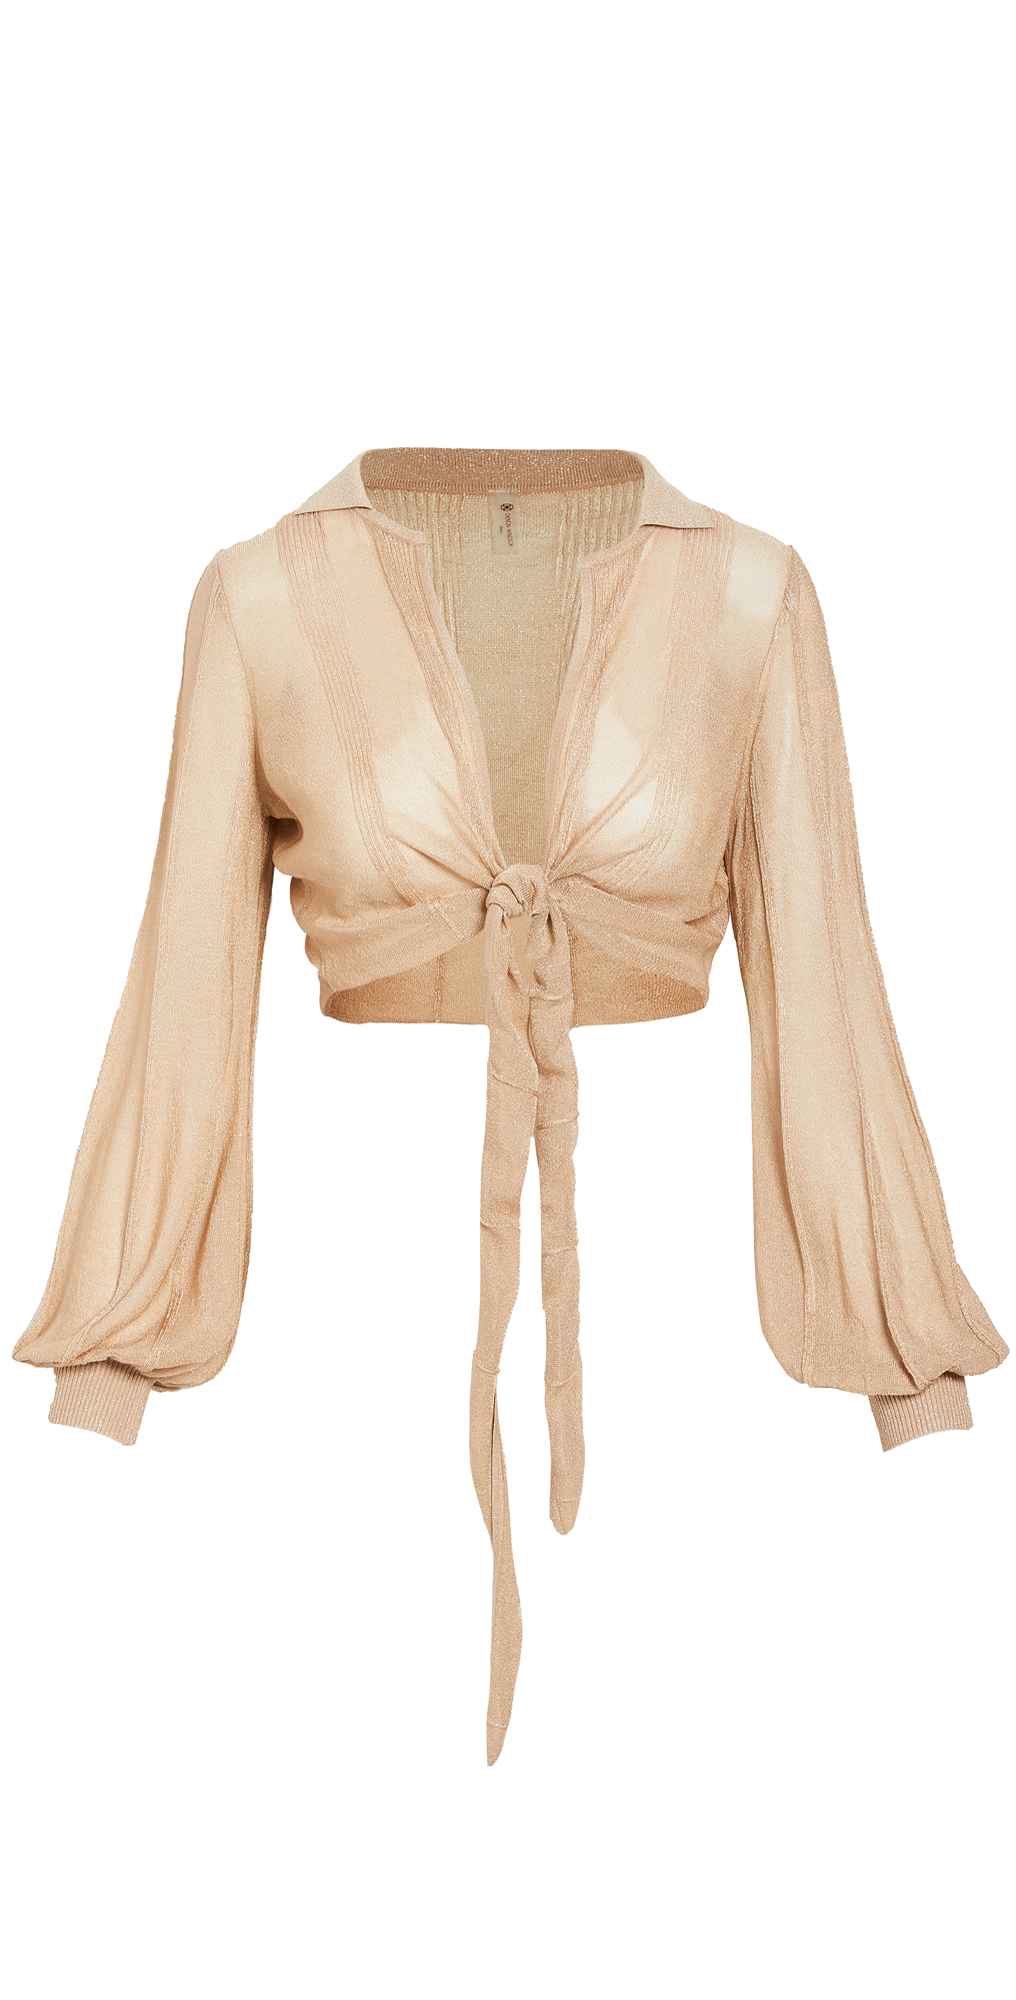 Devon Windsor Ella Blouse